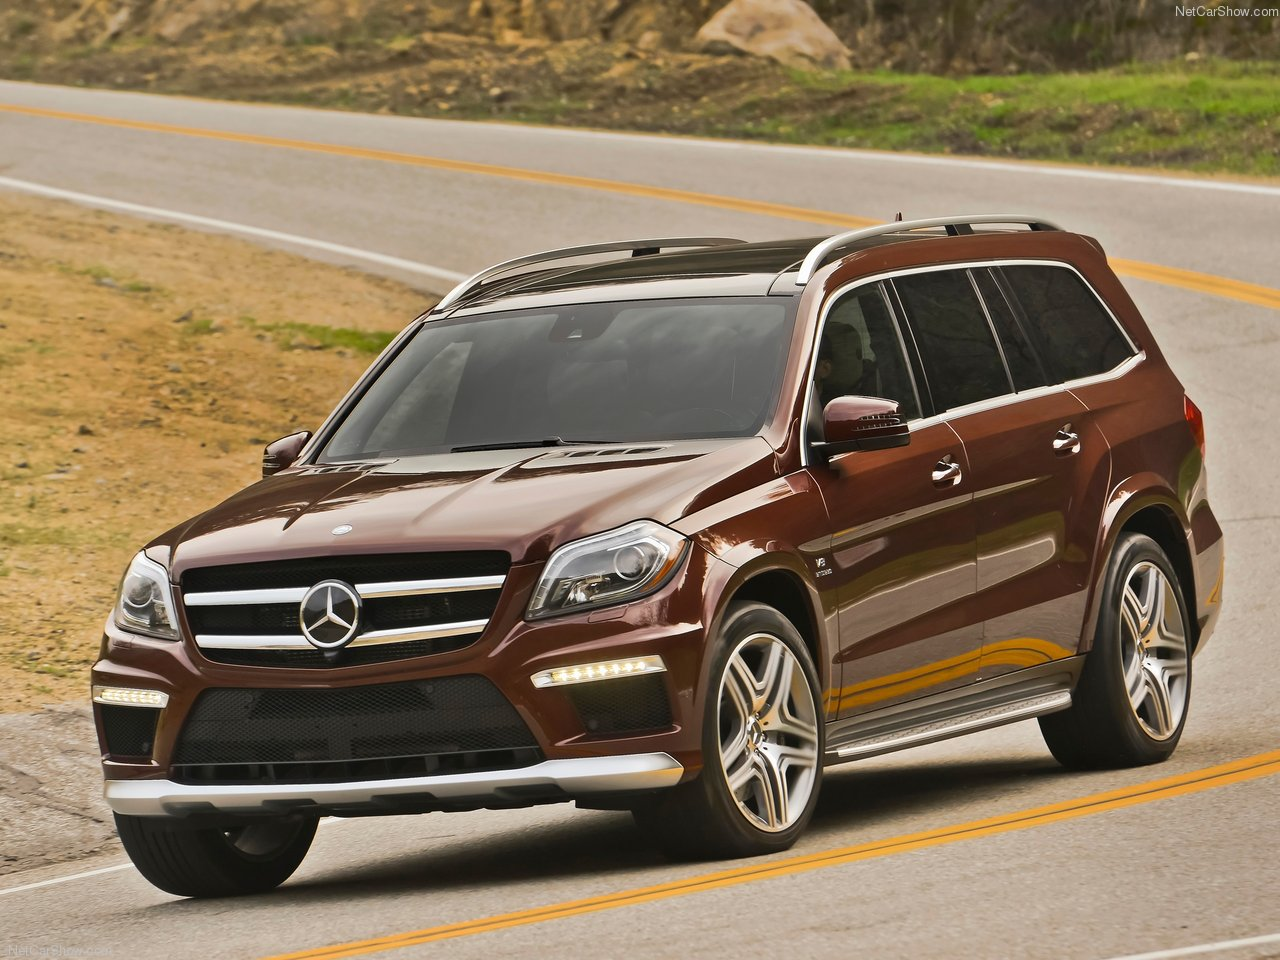 Mercedes benz gl63 amg 2013 netcarshow for Mercedes benz gl63 amg